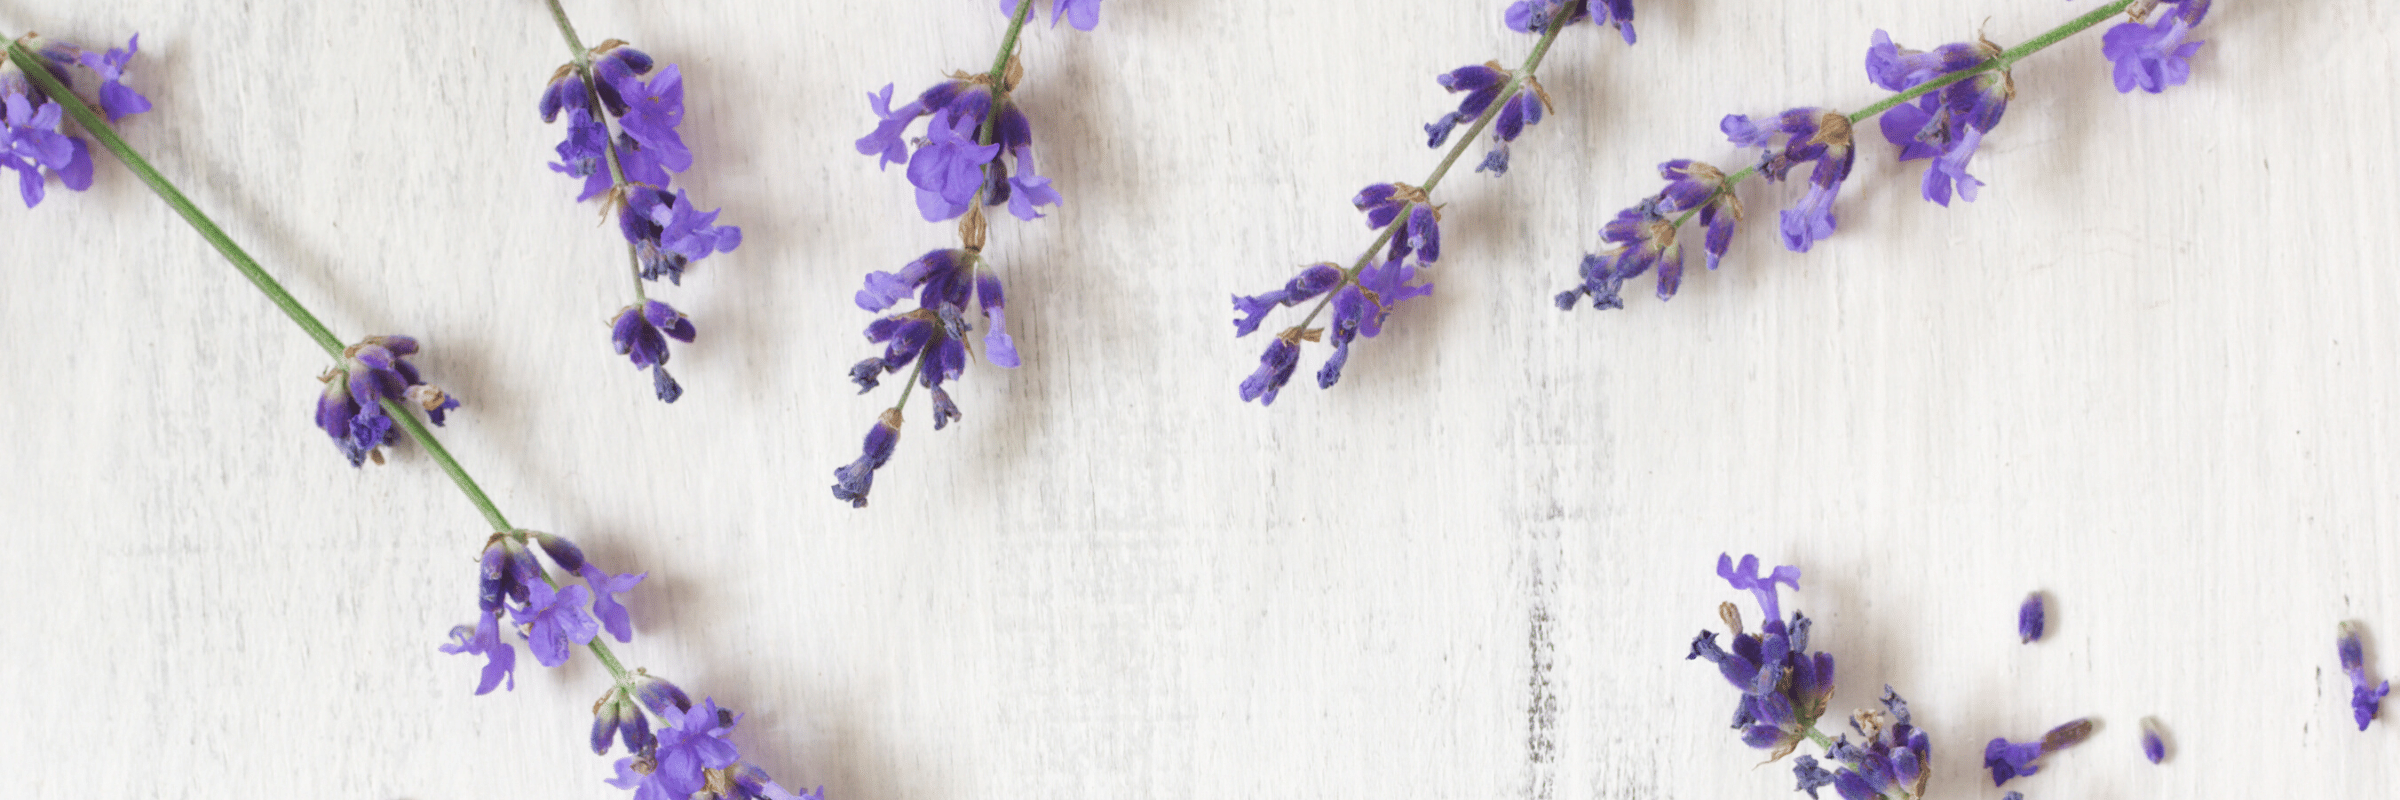 Design + Marketing by Jennifer Skondin: Lavender